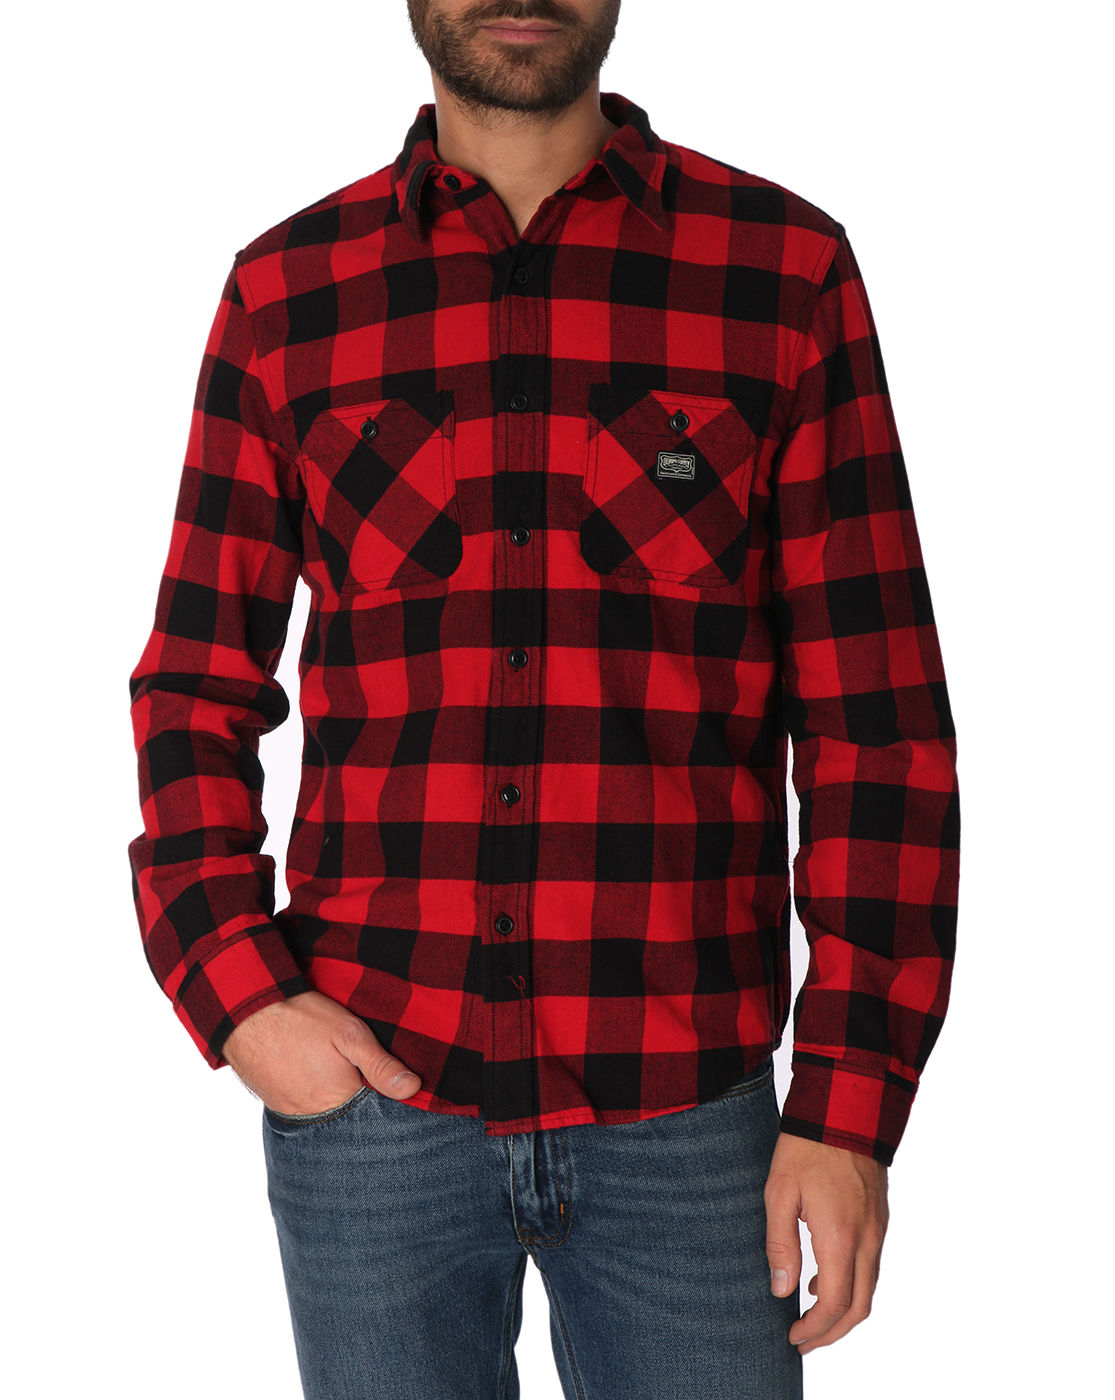 Choose from a wide assortment of denim shirts, flannel shirts and plaid shirts for a look that empowers style and fashion. Hues of red, orange and cream brighten up your jeans and make you stand out in a feminine way.